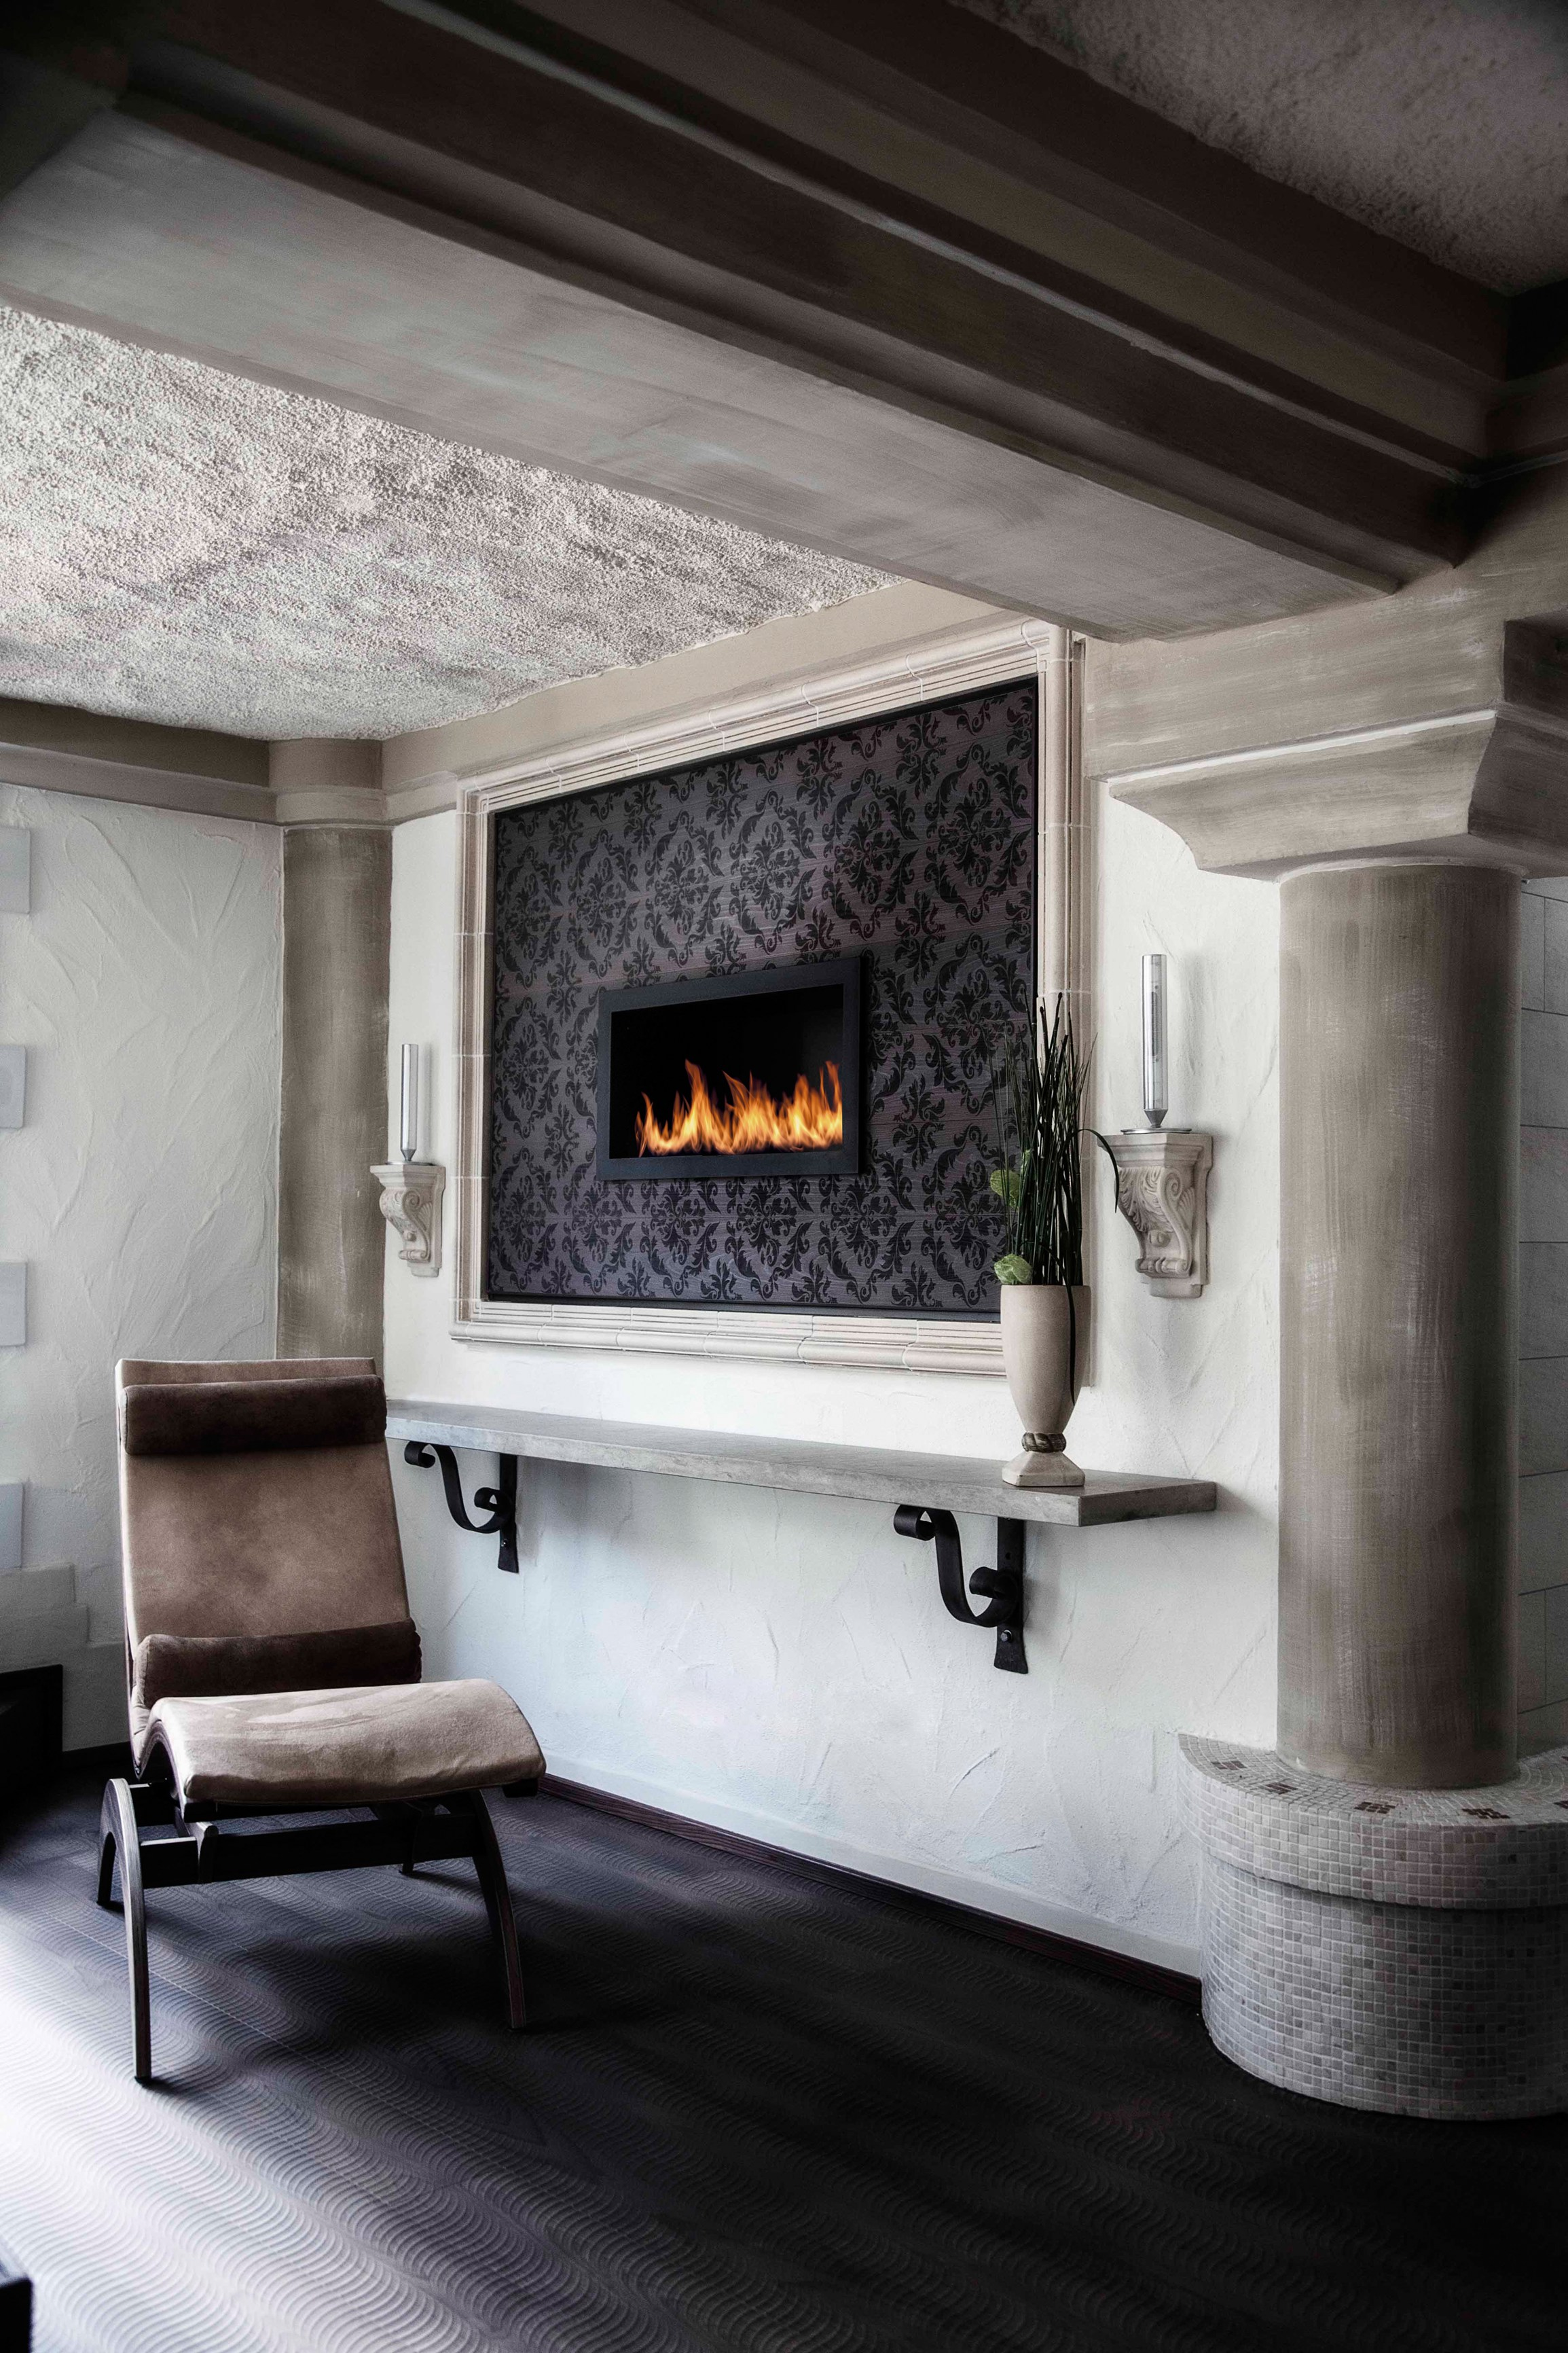 Built In Bioethanol Wall Mounted Fireplace Primefire In Casing By Planika